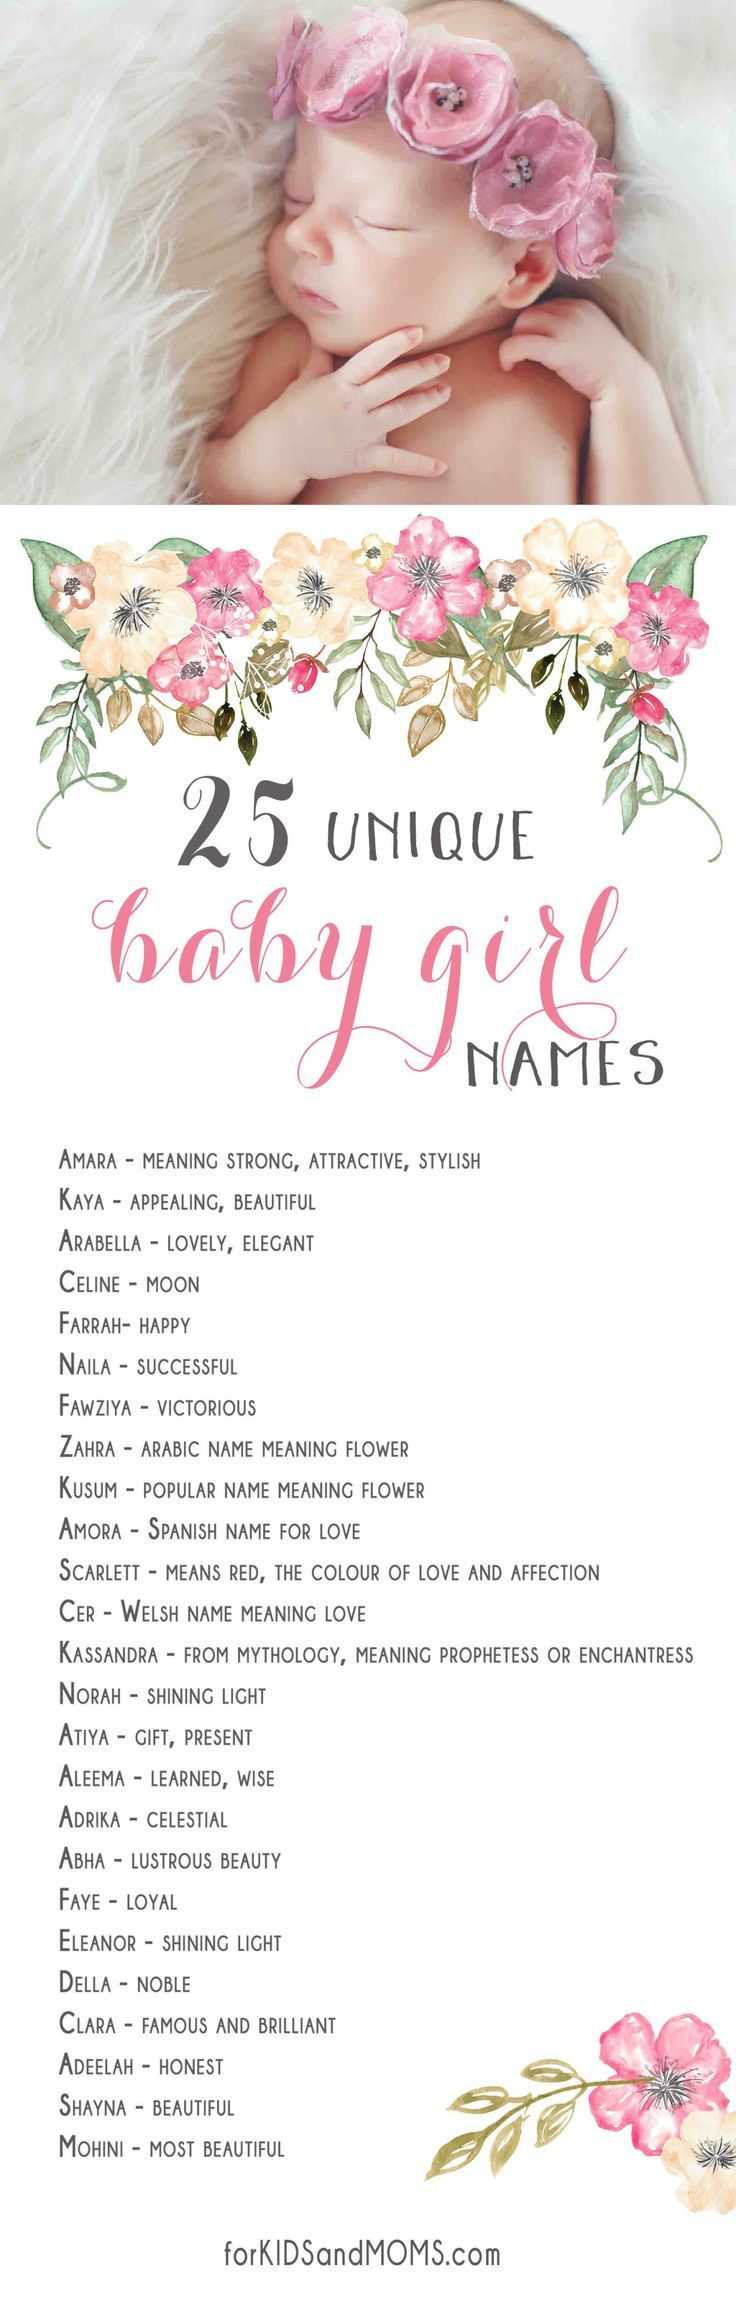 25 Unique Baby Girl Names and Meanings List http